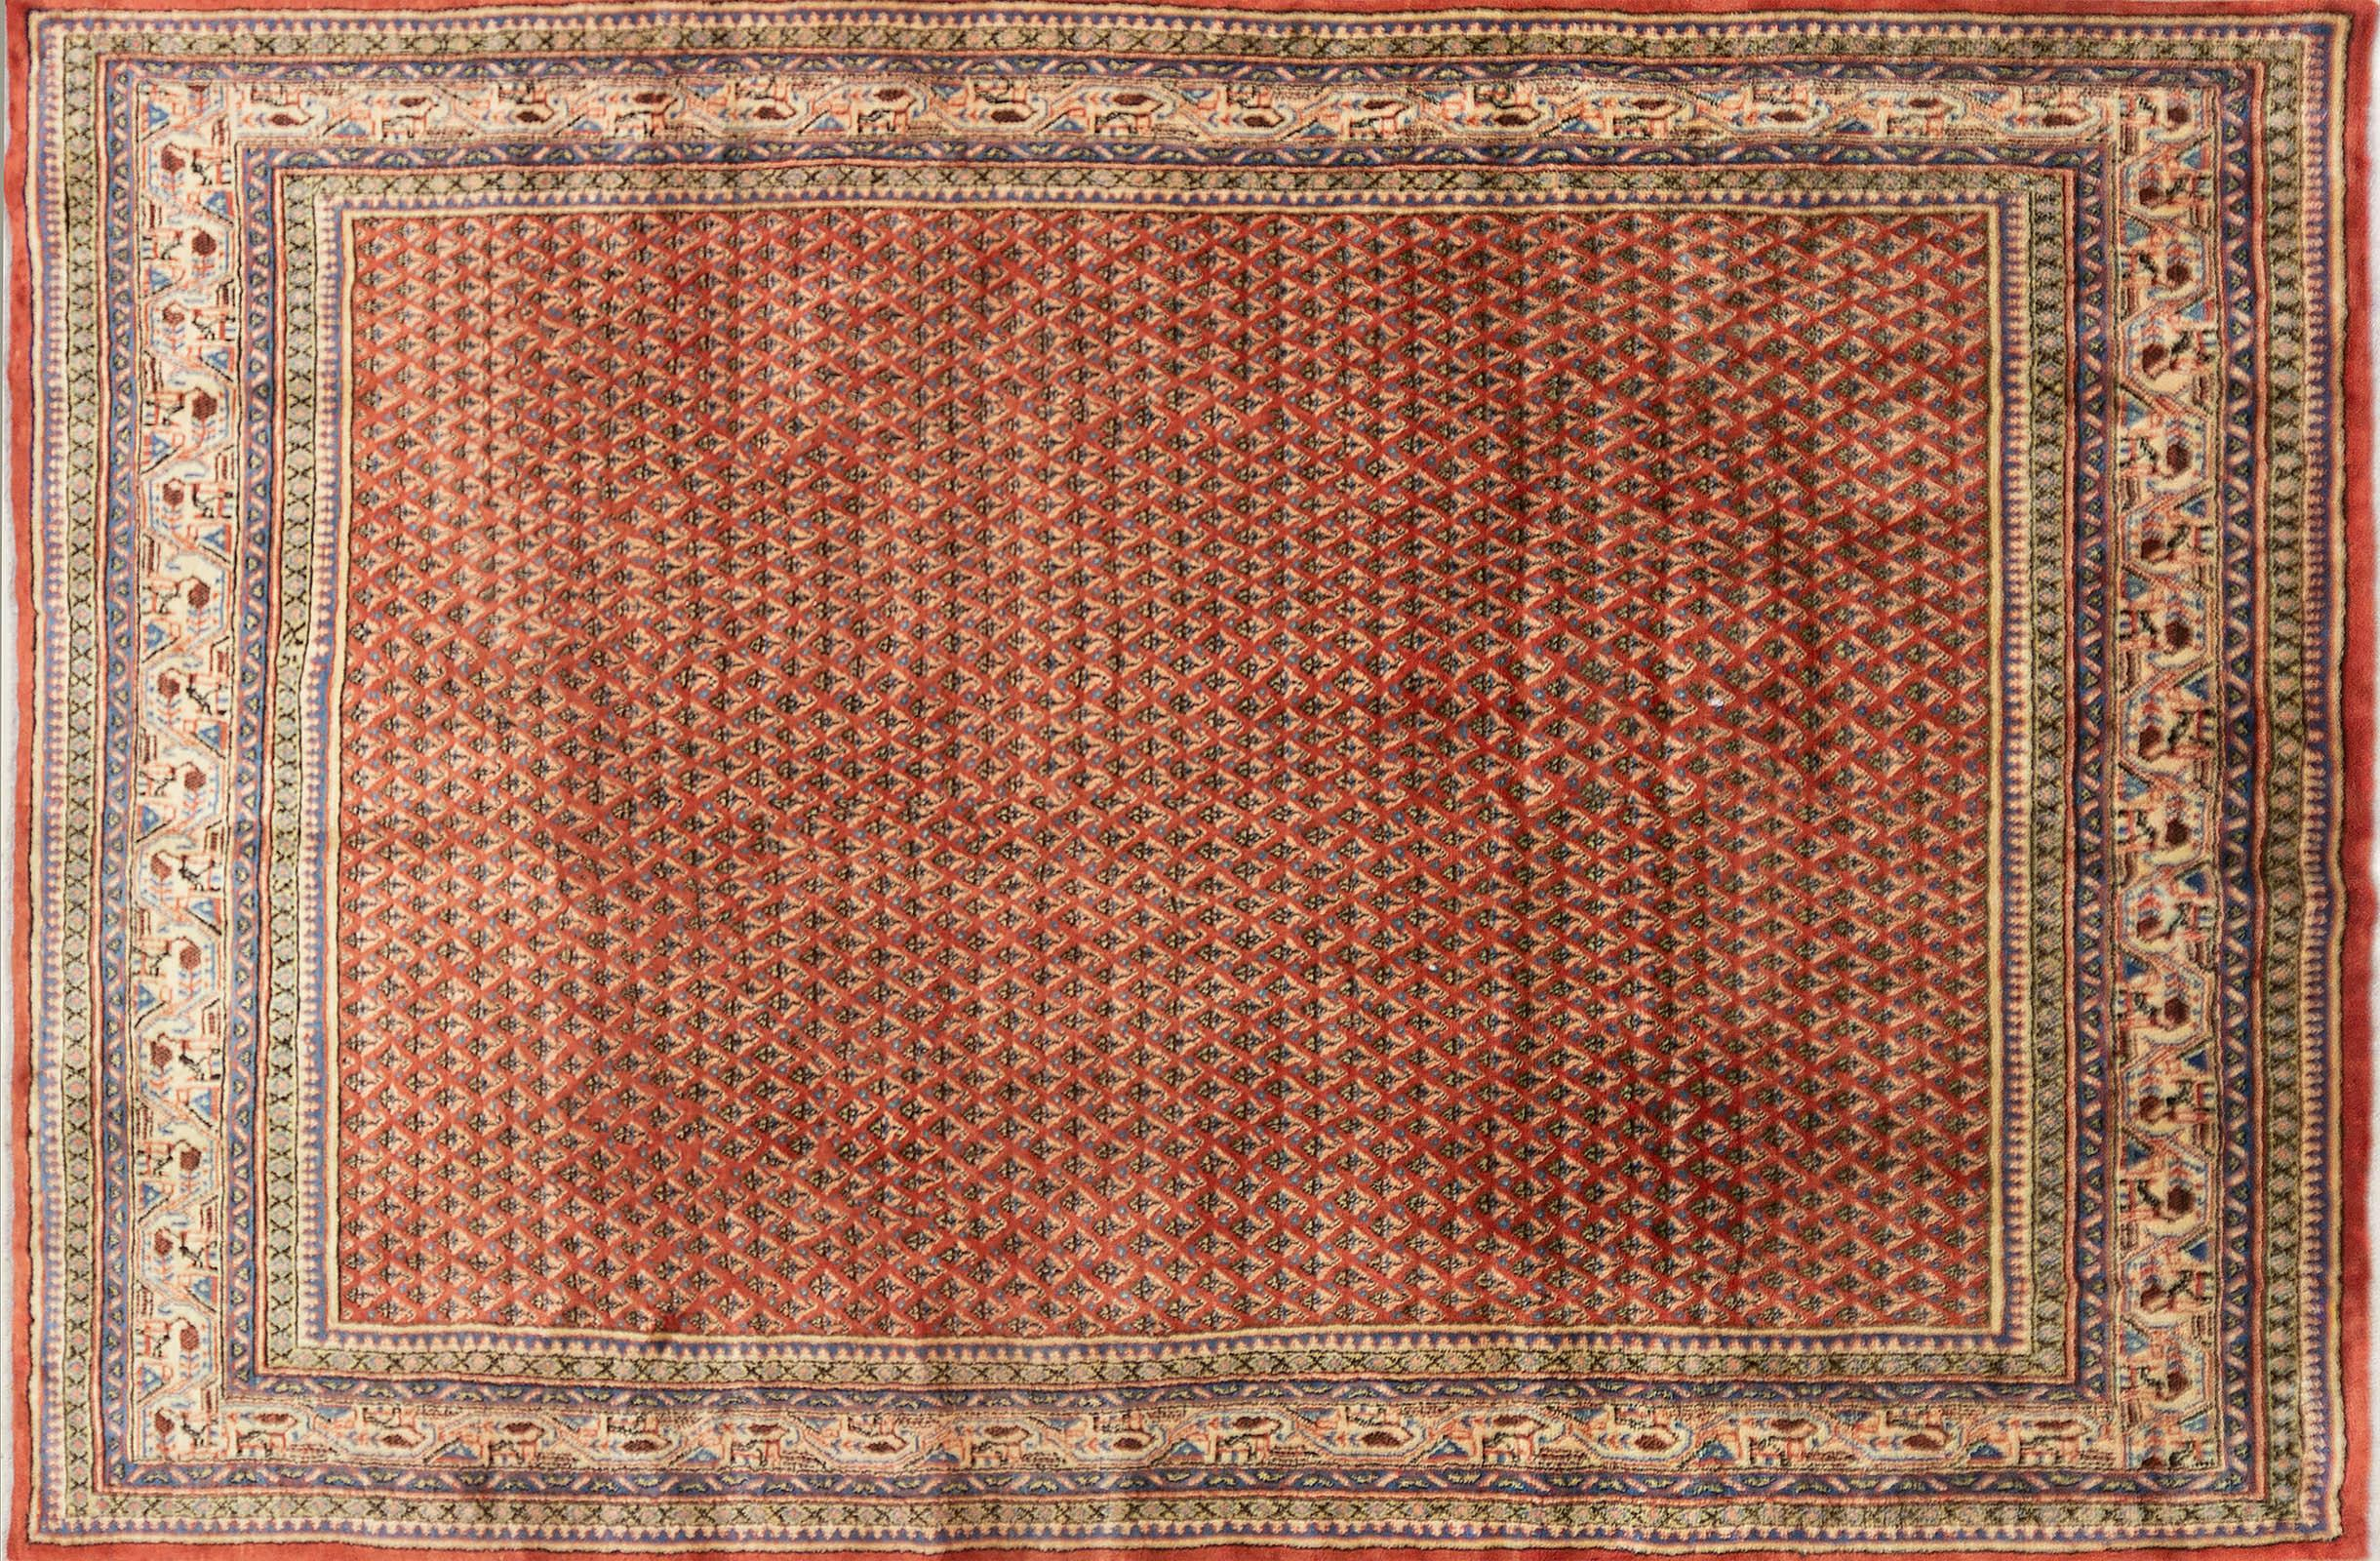 A Persian Hand Knotted Mir Carpet, 318 x 208